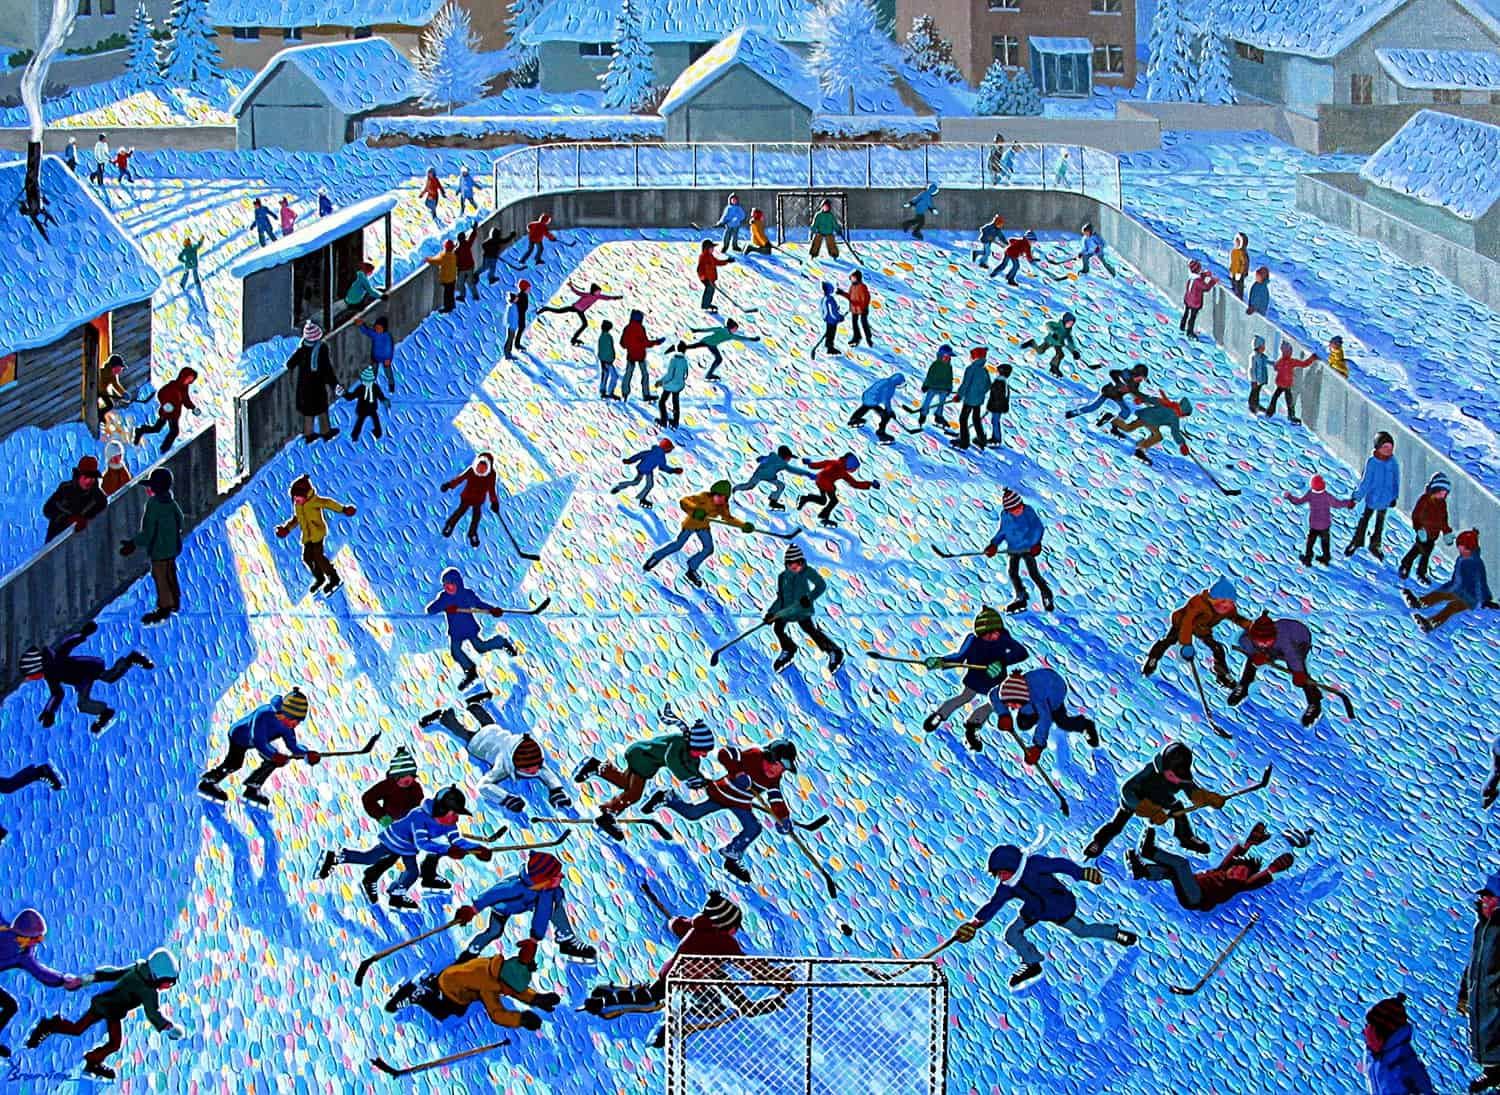 Winter Arena by Bill Brownridge